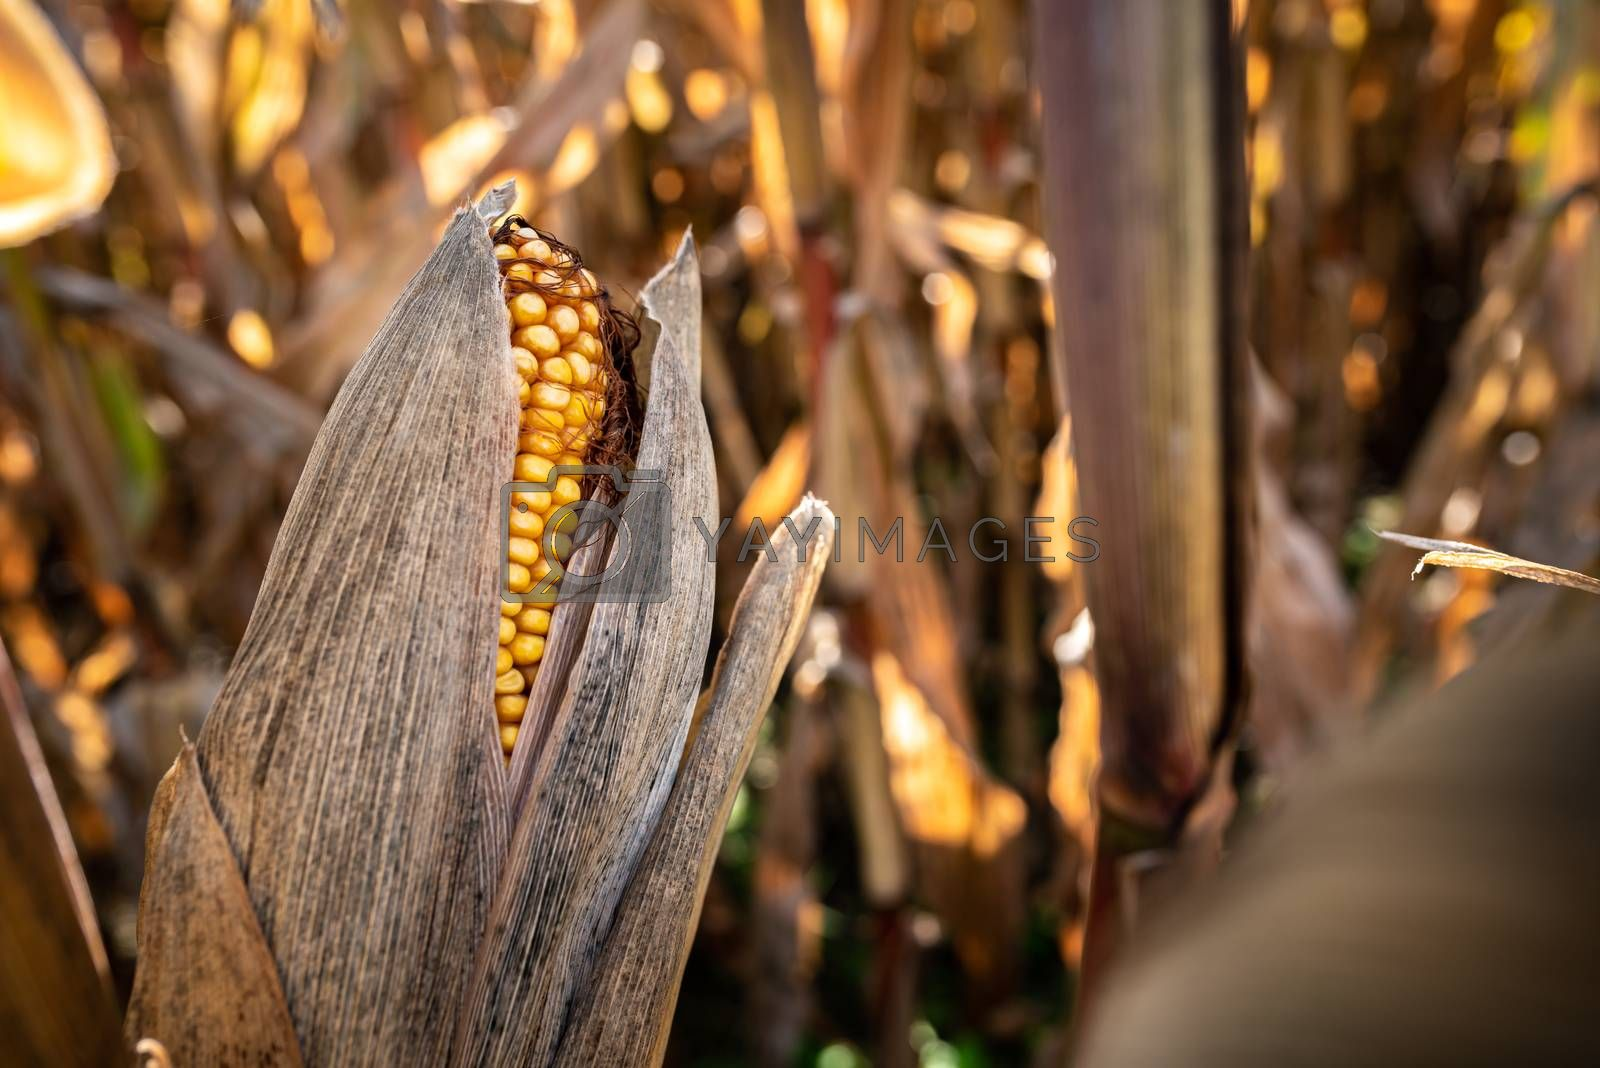 Yellow corn in agricultural field against autumn sun. Selective focus. Maize plant.